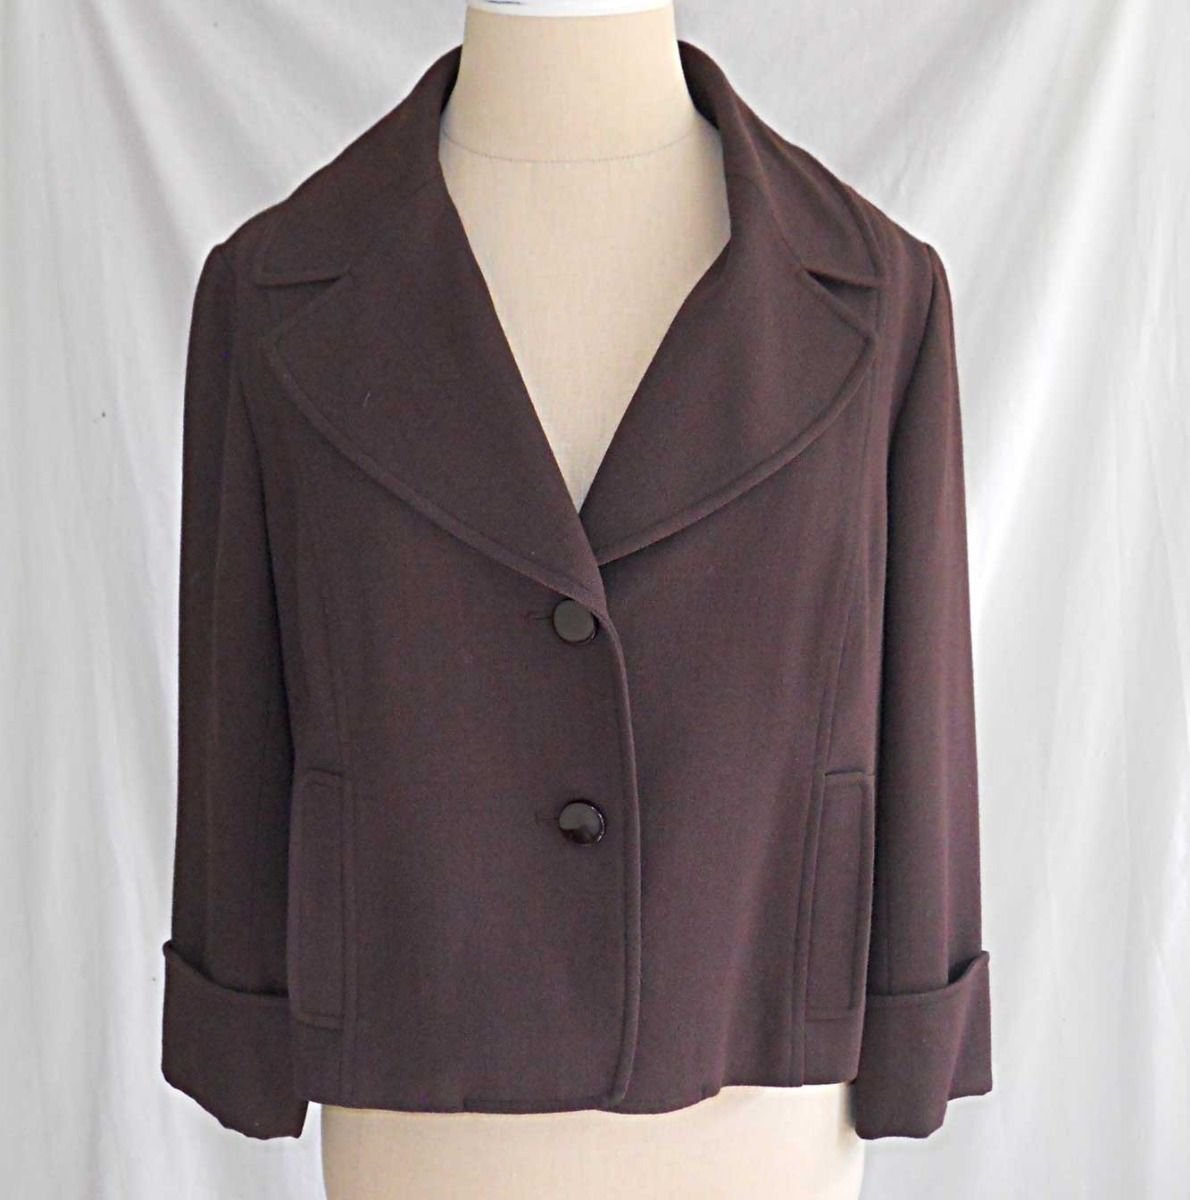 Badgley Mischka Jacket Vintage Deadstock Retro Crop Fitted Swing Nos Peak Lapel